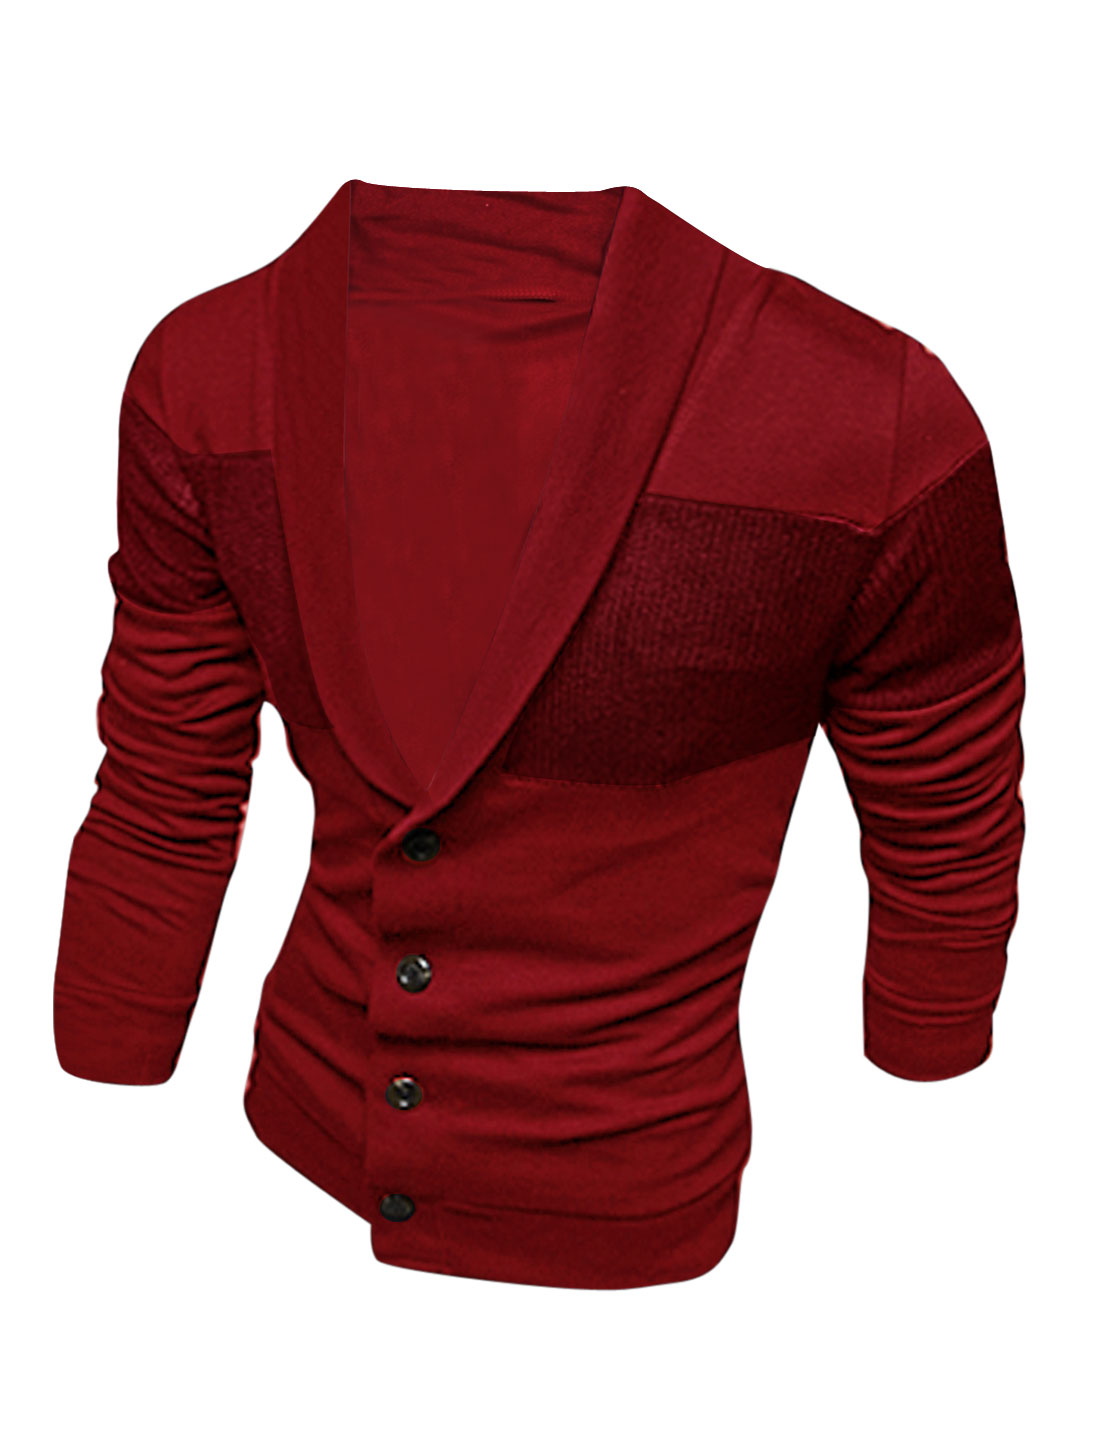 Men Shawl Collar Four Buttons Closure Knitted Panel Cardigan Burgundy M